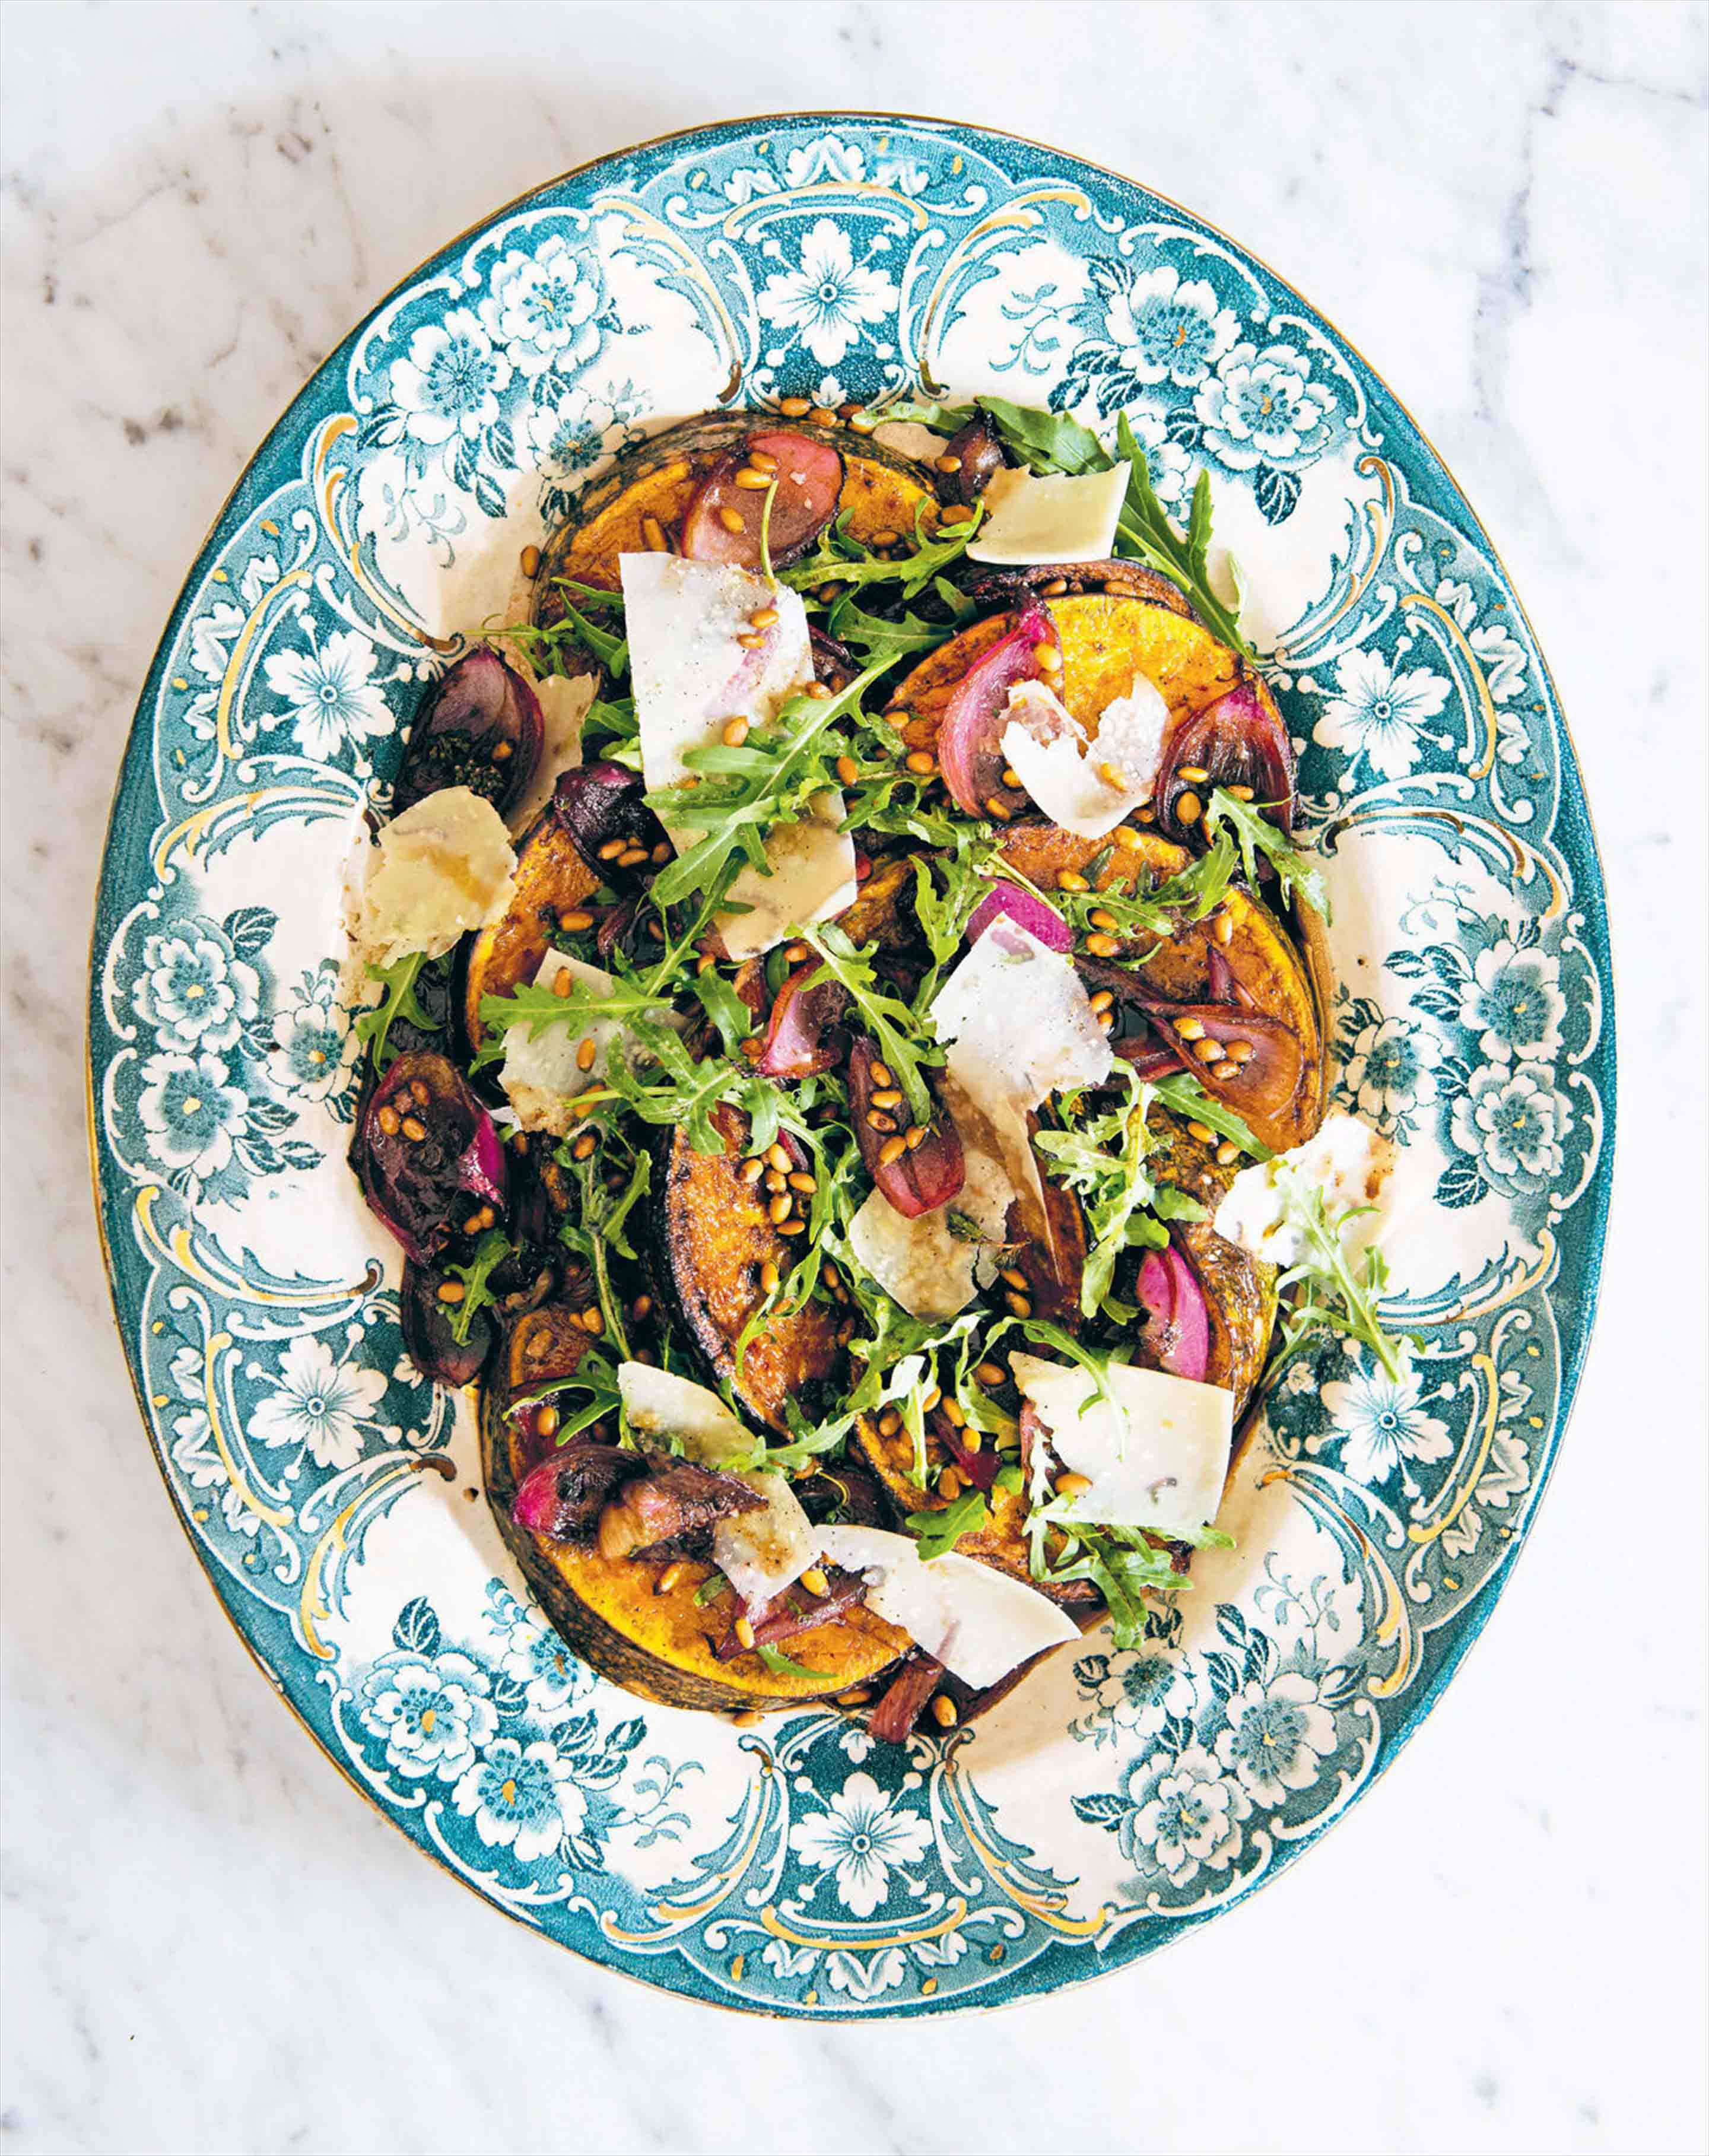 Roasted pumpkin, rocket, balsamic onion & parmesan